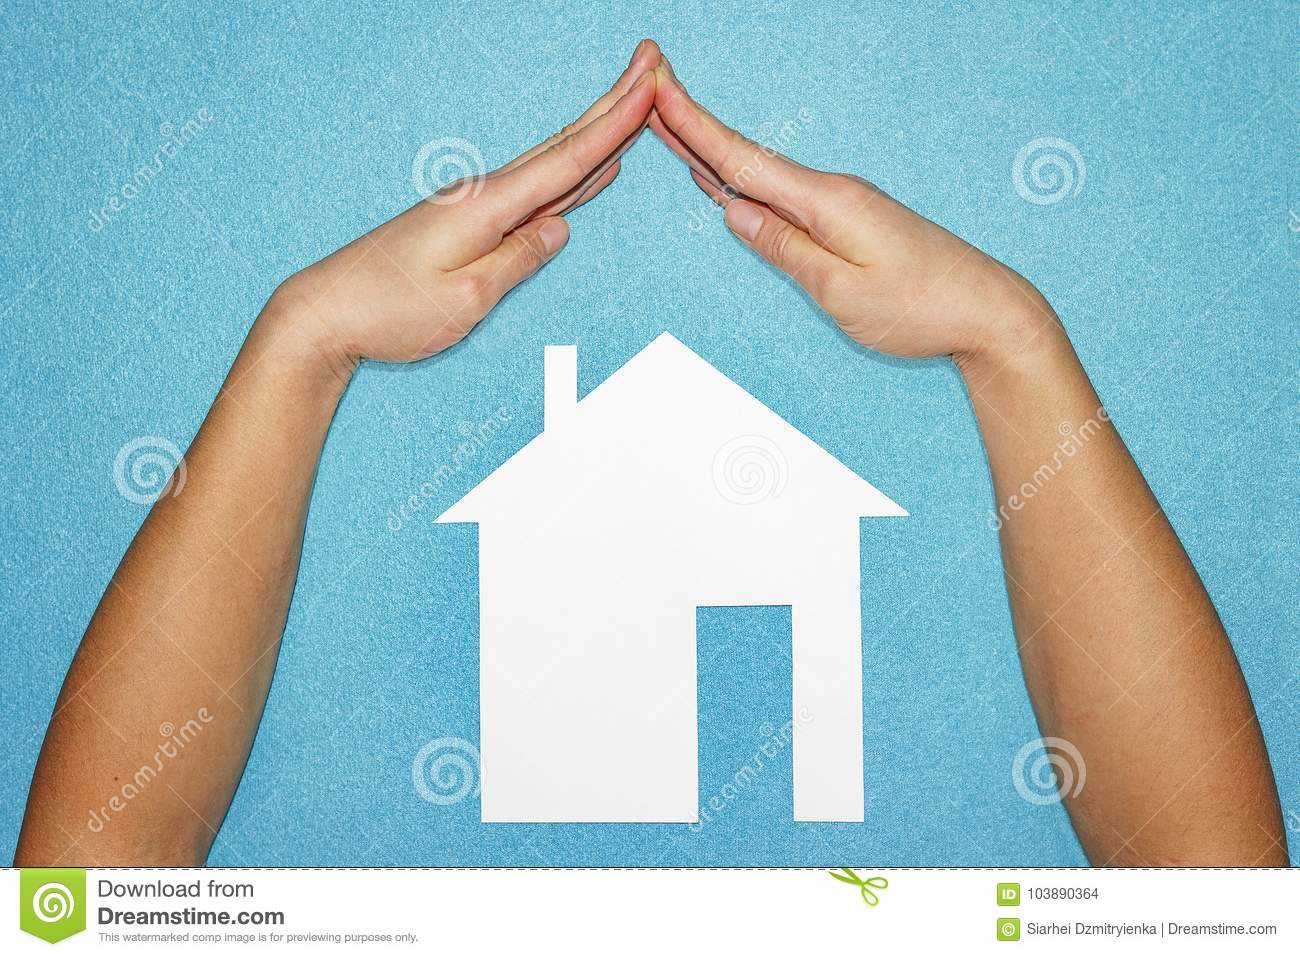 Home insurance concept. Hands in form of roof over house of white paper on blue background